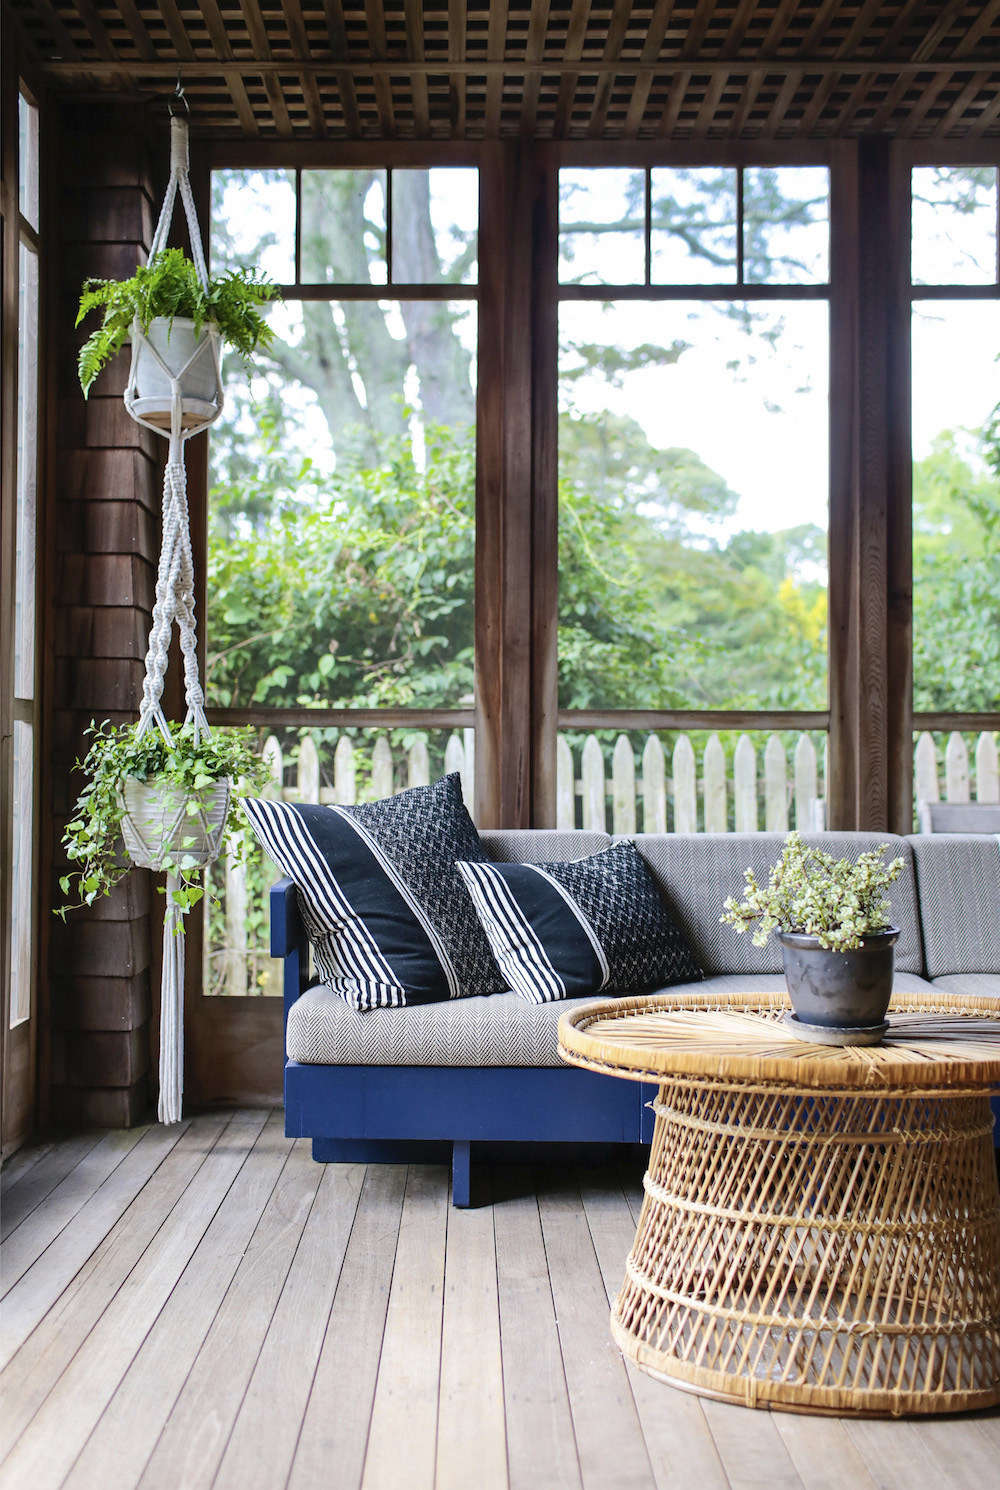 Elizabeth bought the sun porch sofa at auction and had it painted blue and reupholstered. The macramé plant holder is from CB2.